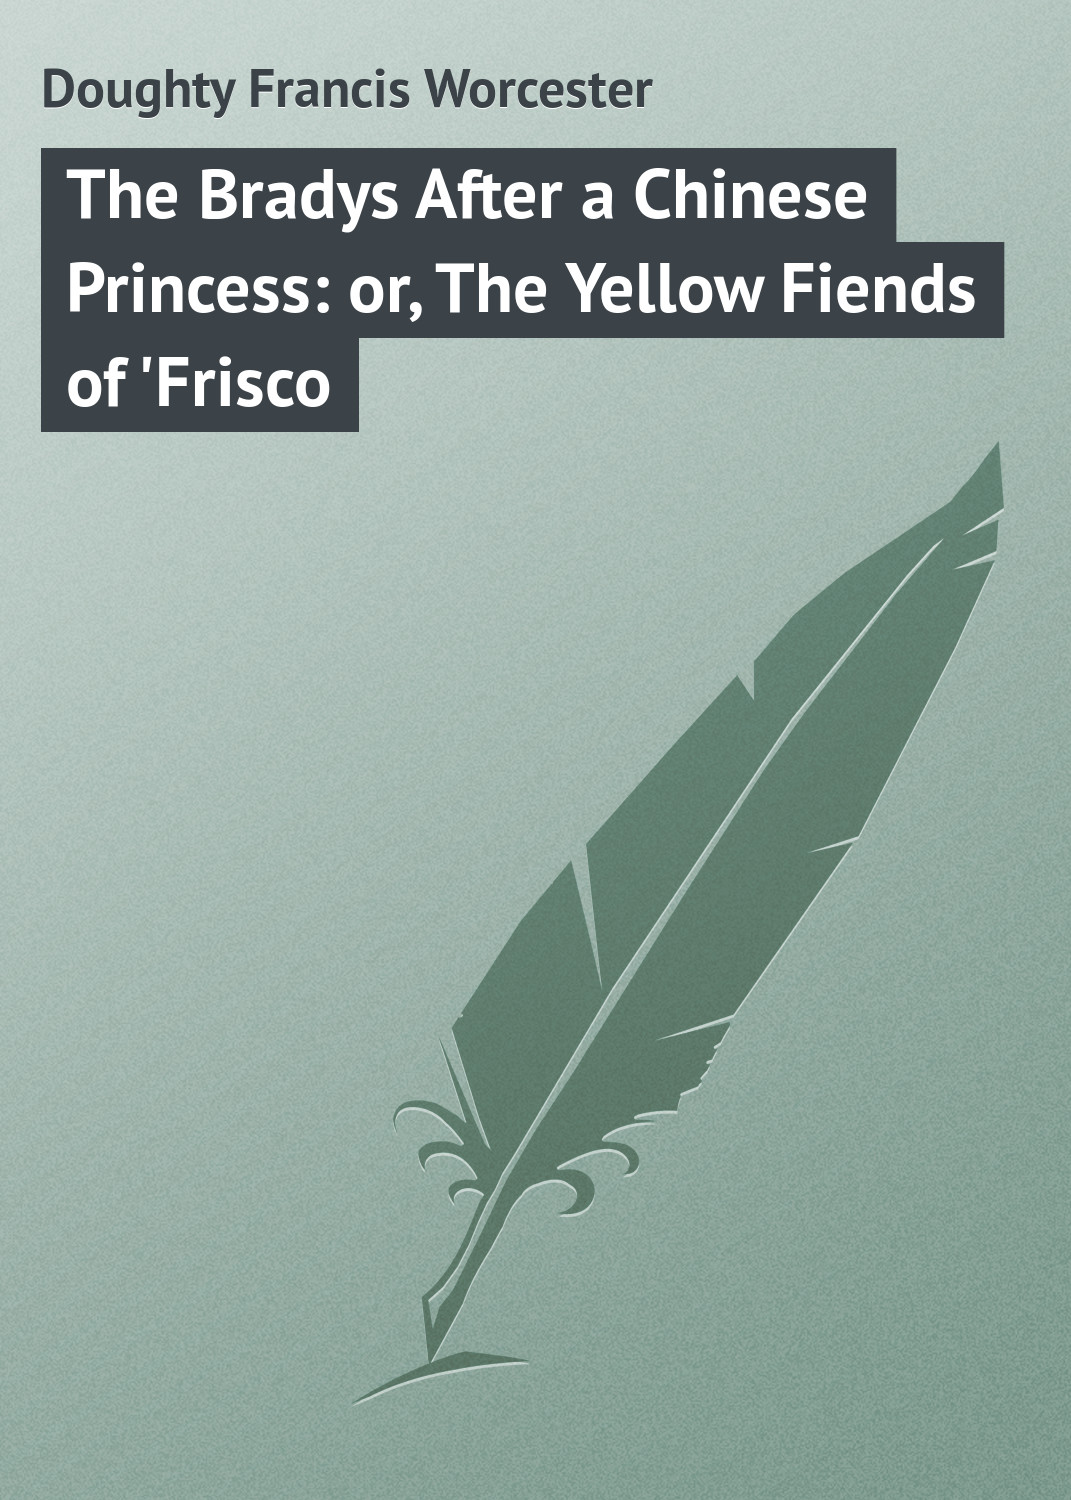 Doughty Francis Worcester The Bradys After a Chinese Princess: or, The Yellow Fiends of 'Frisco gasquet francis aidan the eve of the reformation